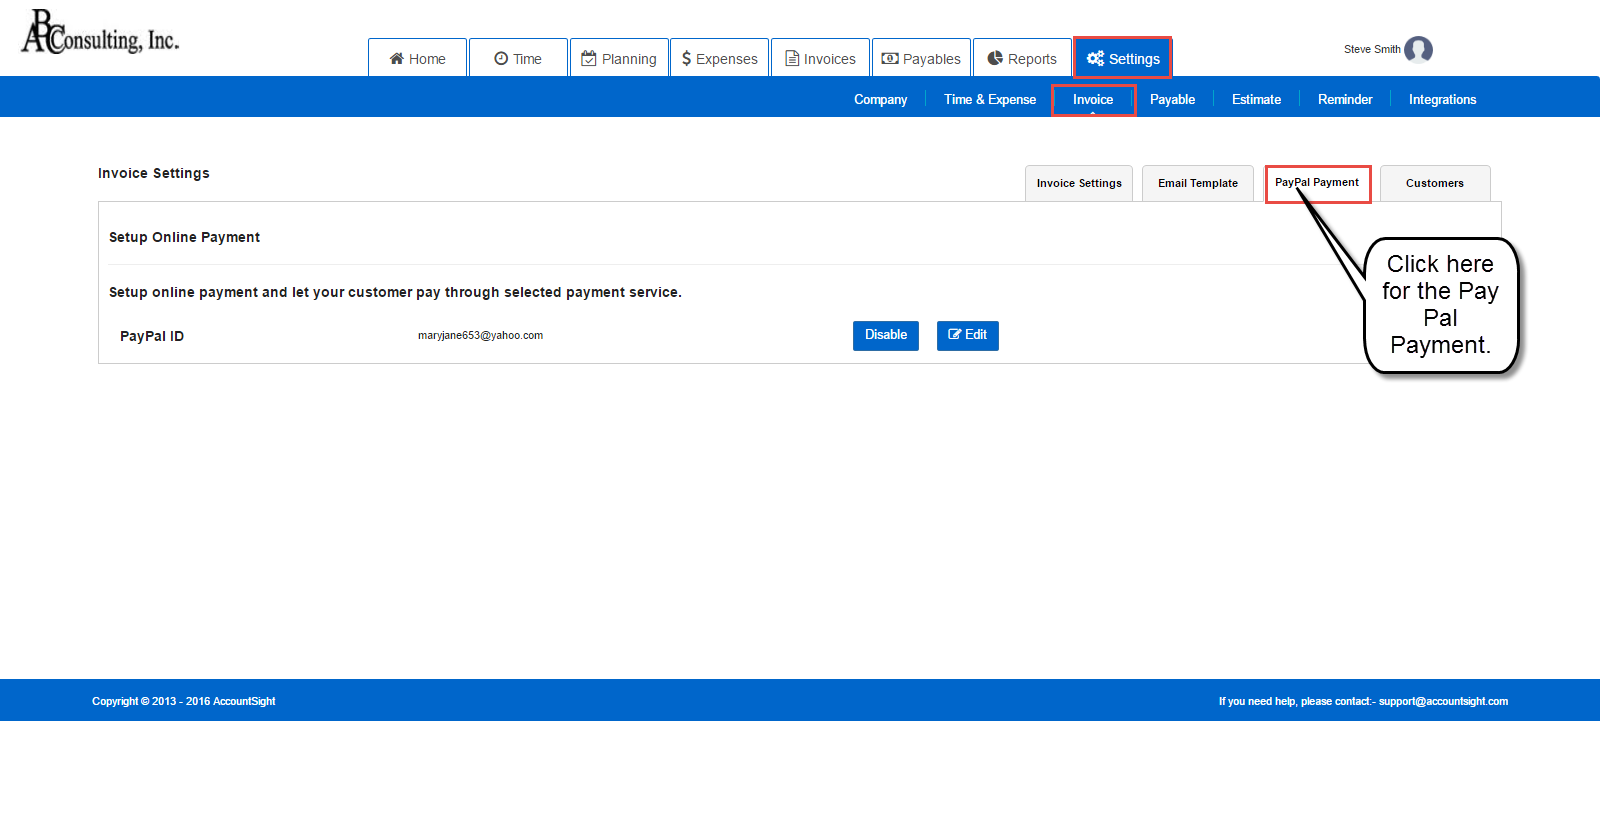 PayPal integration feature in AccountSight time and billing software